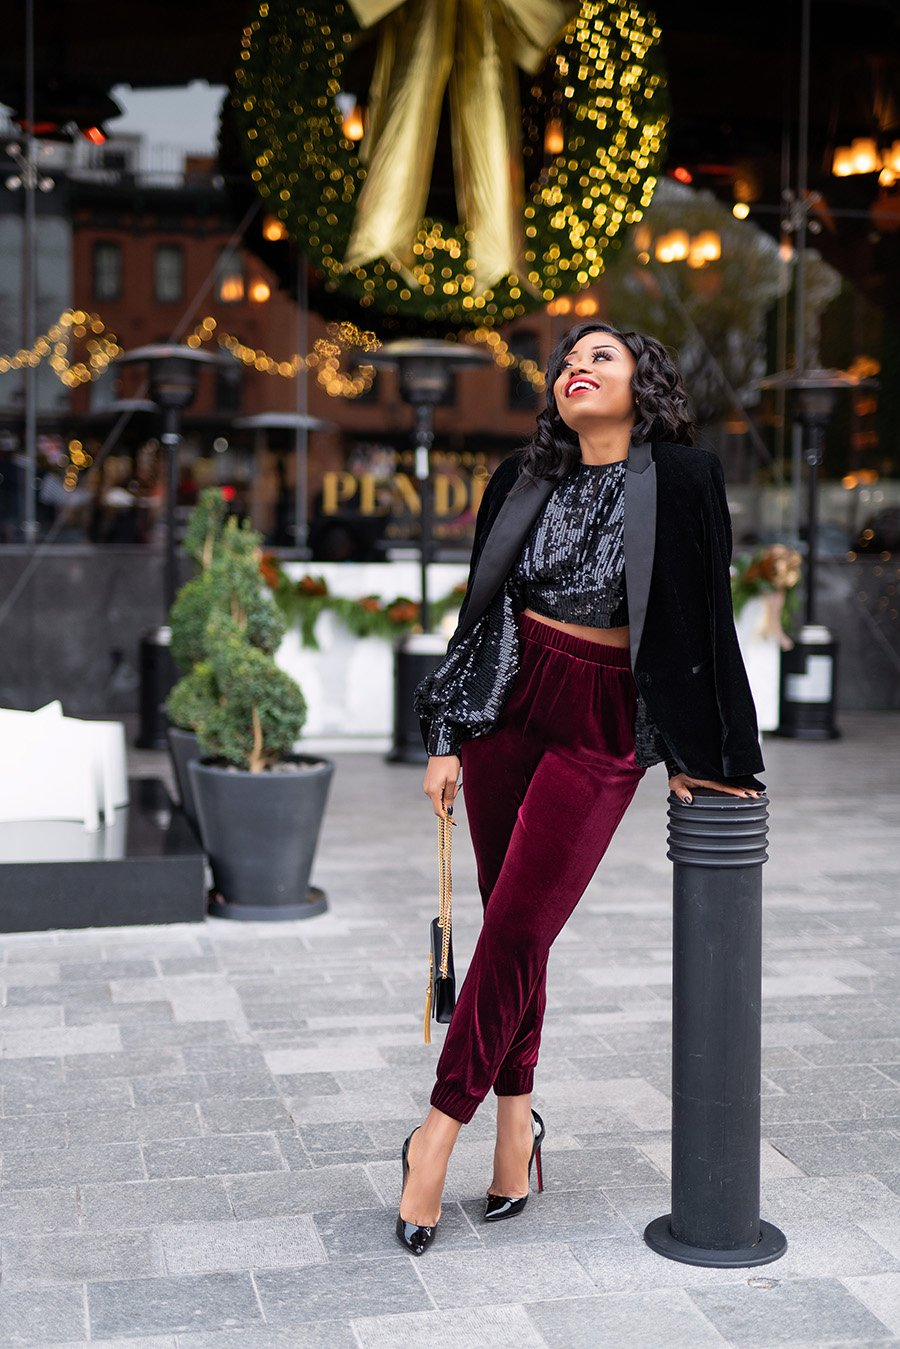 stella-adewunmi-share-comfortable-and-chic-NYE-holiday-outfit